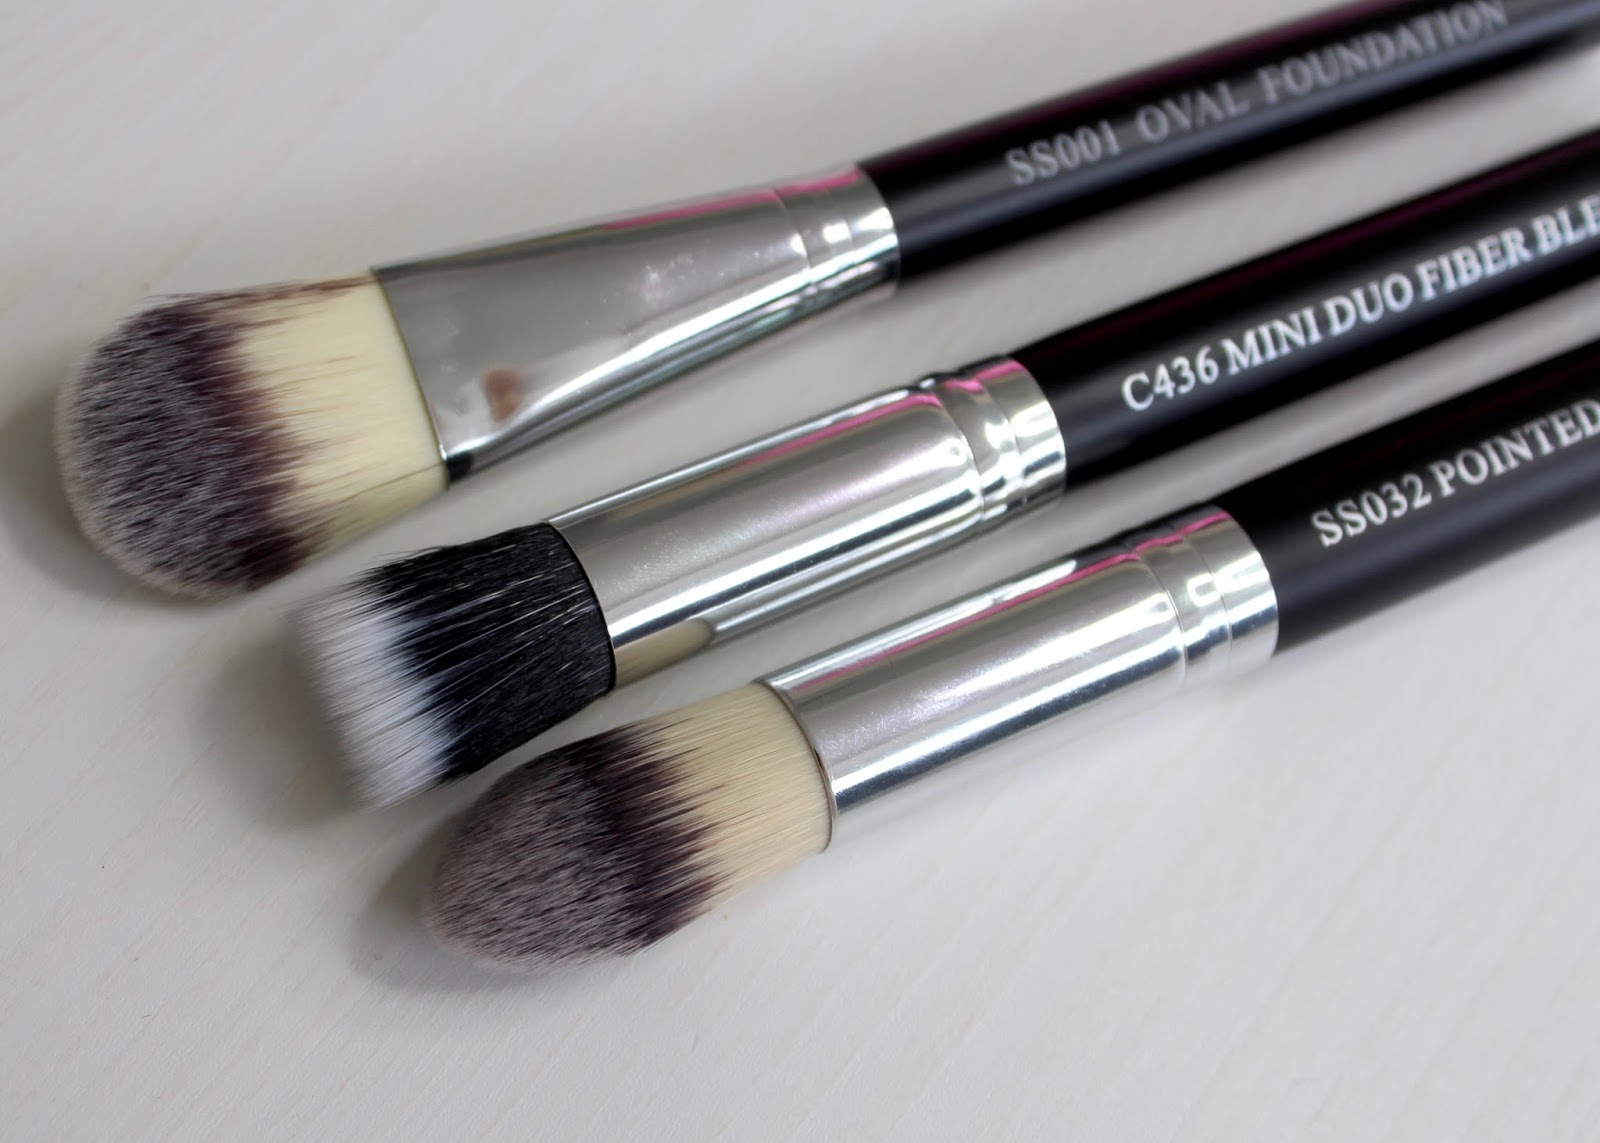 Crown Brush 10 colour concealer palette and face brush